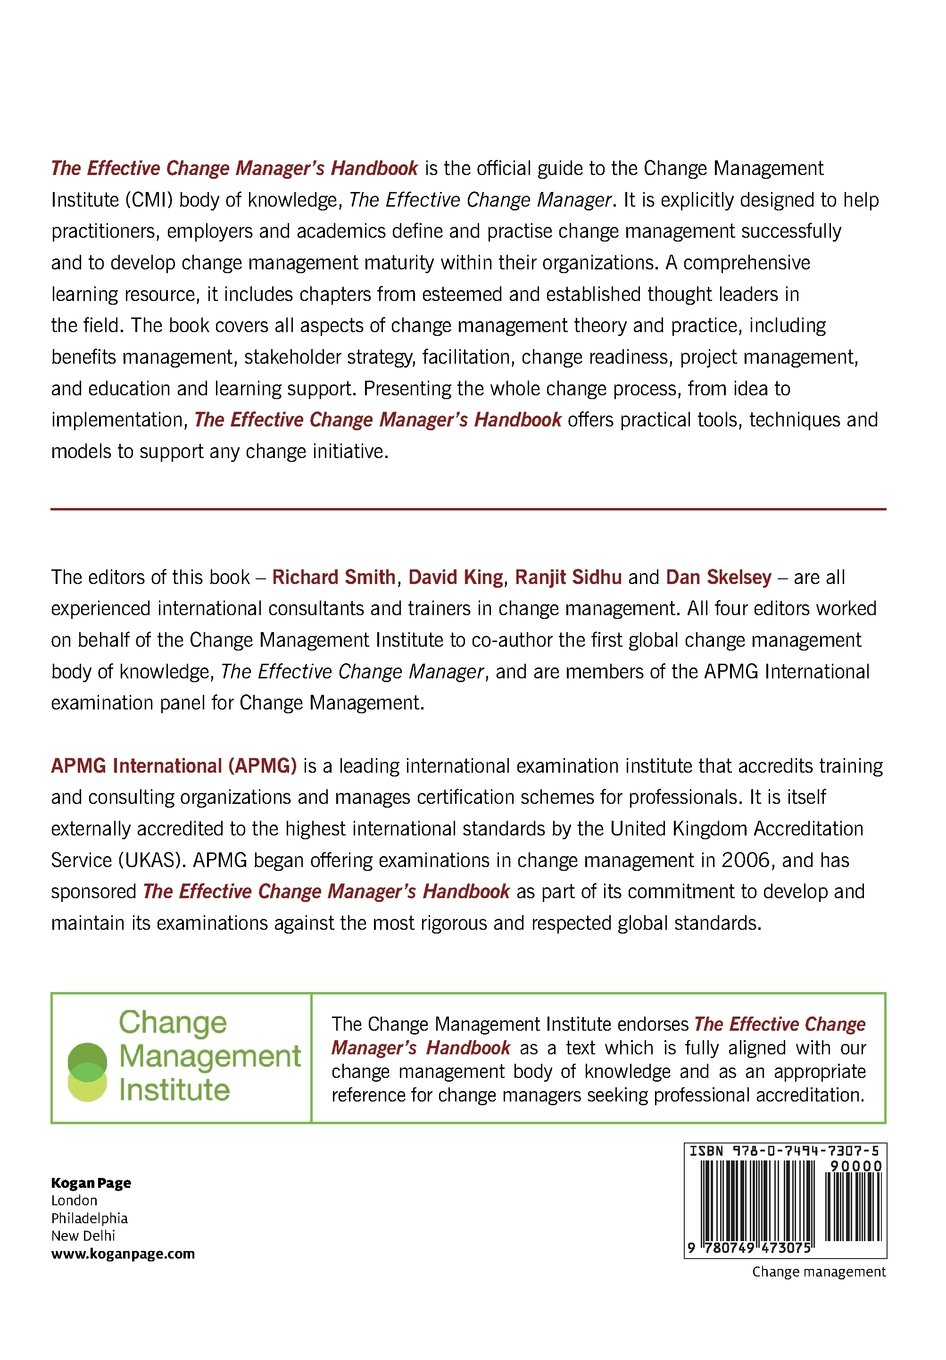 The Effective Change Manager's Handbook: Essential Guidance to the Change  Management Body of Knowledge: Amazon.co.uk: Richard Smith, David King, ...